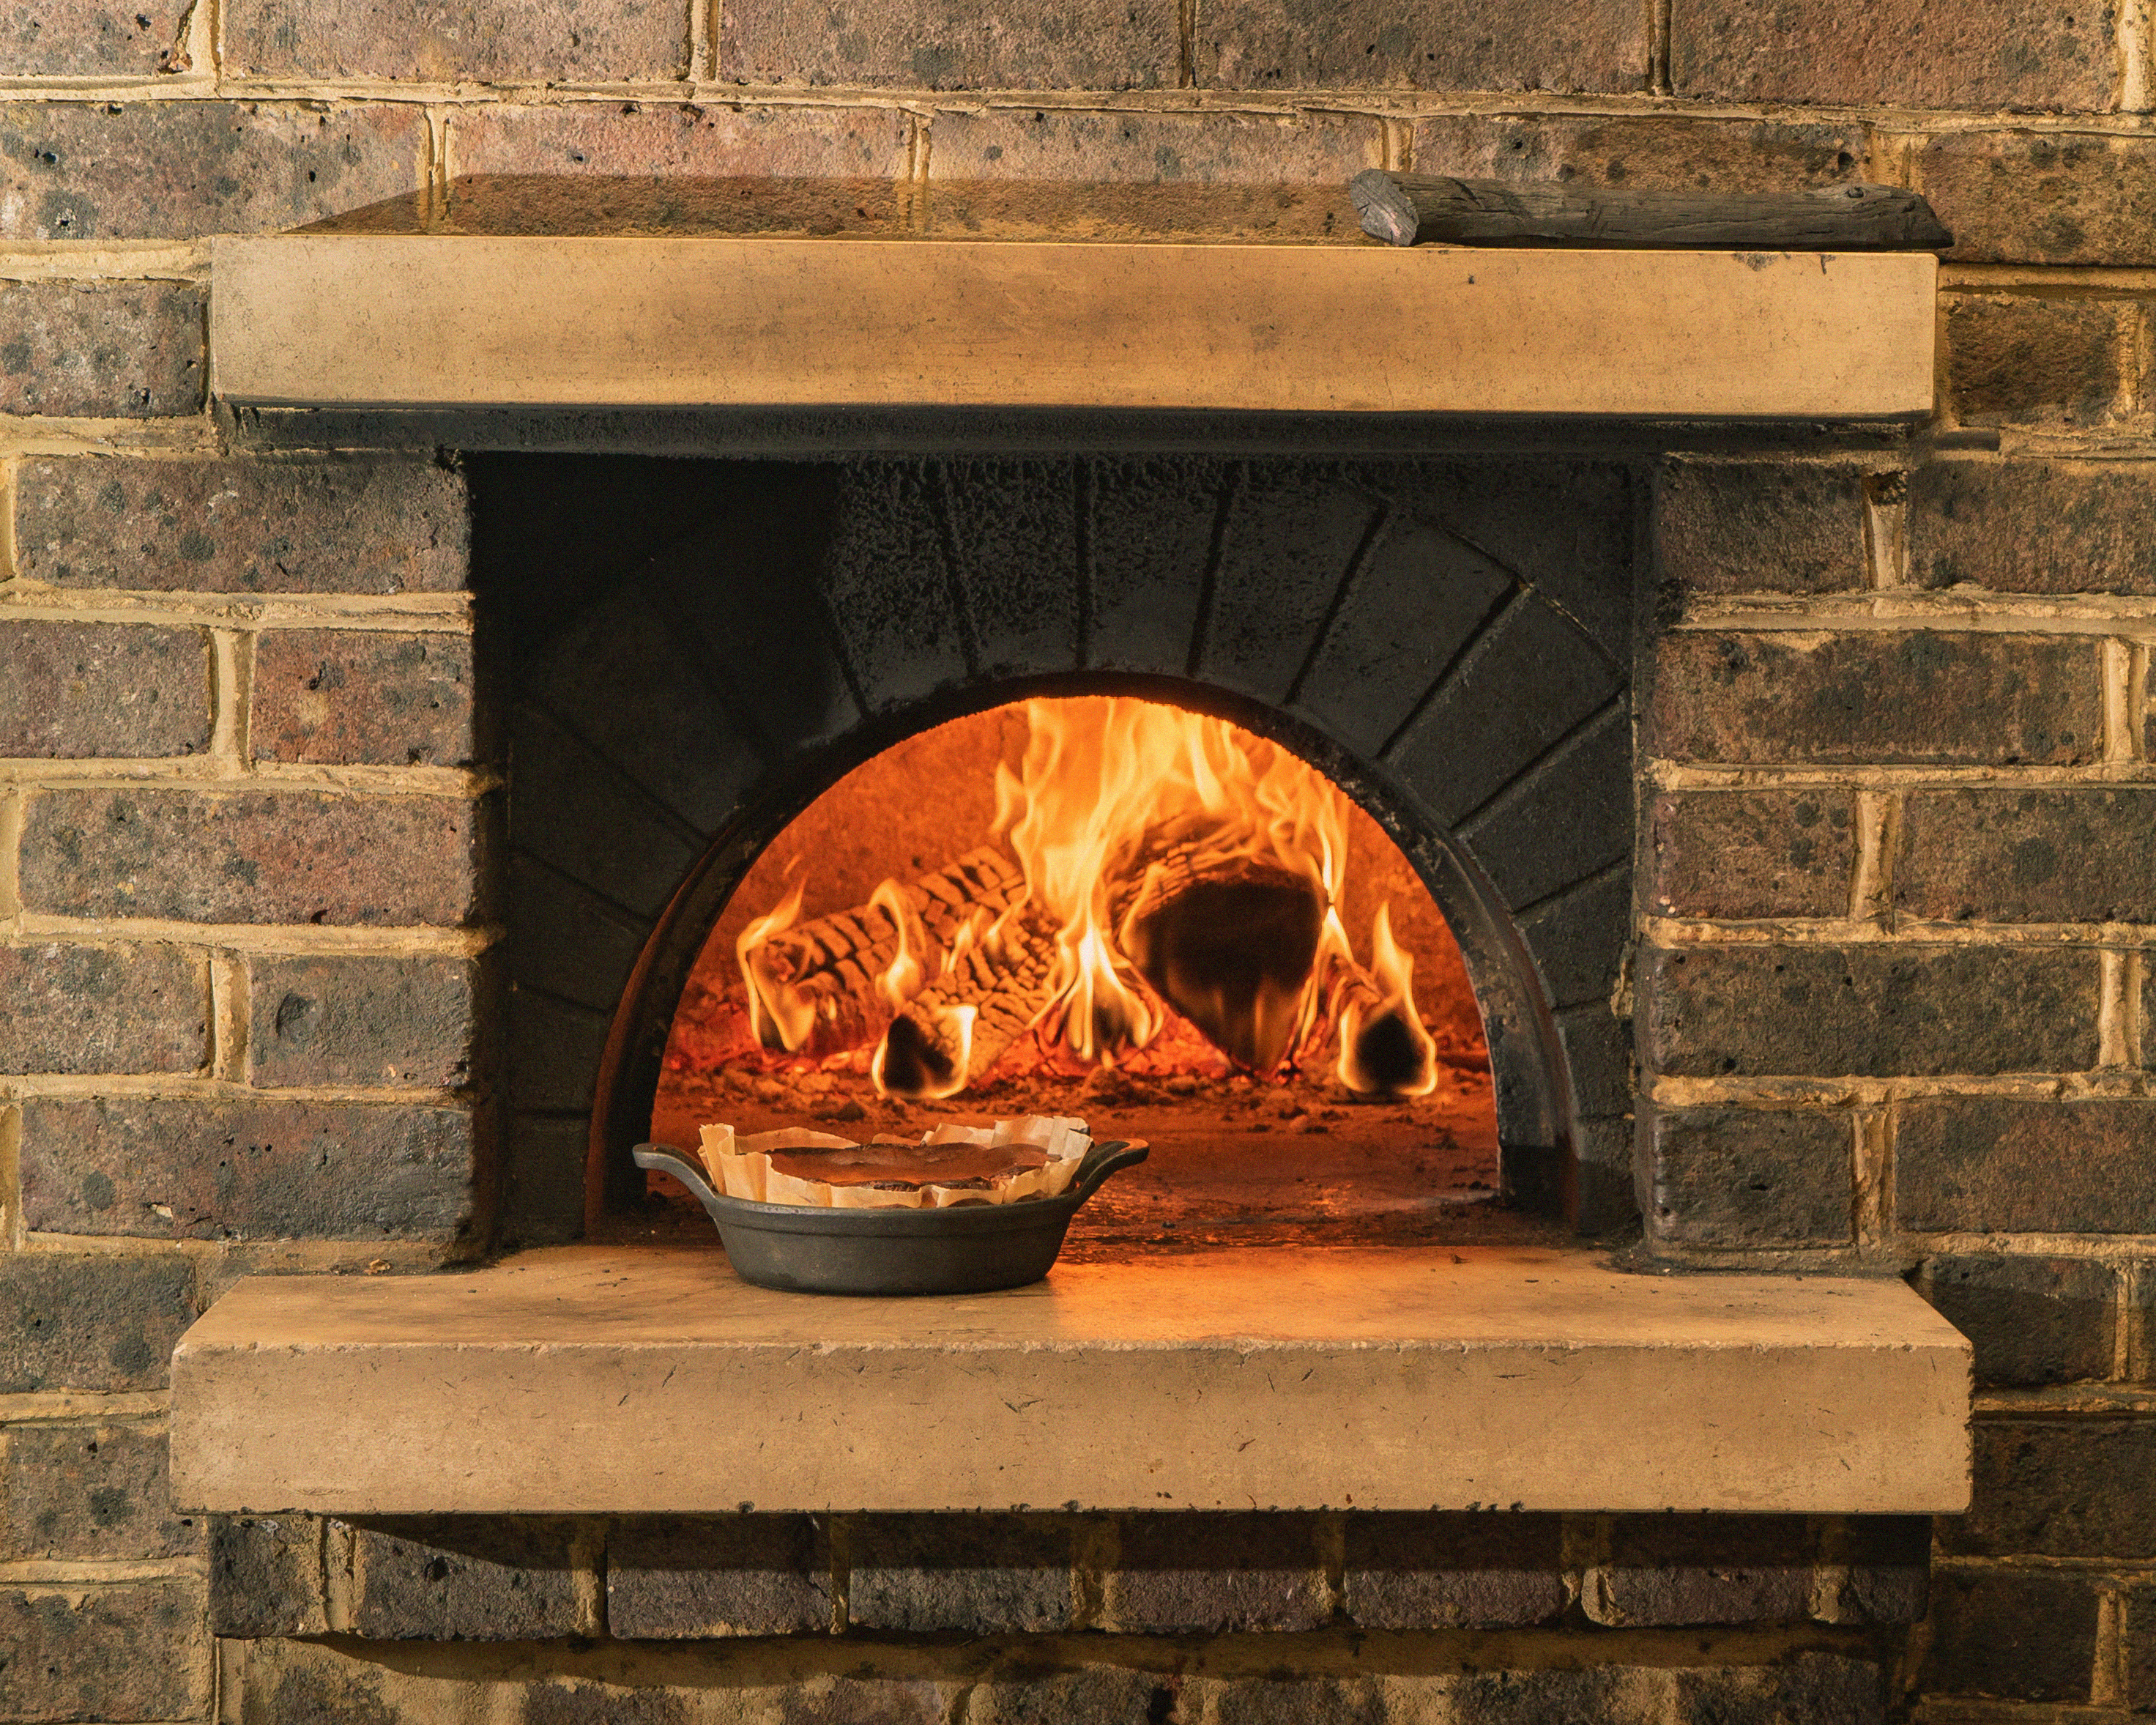 Cheesecake in front of the wood oven at Brat, Eater London's Restaurant of the Year